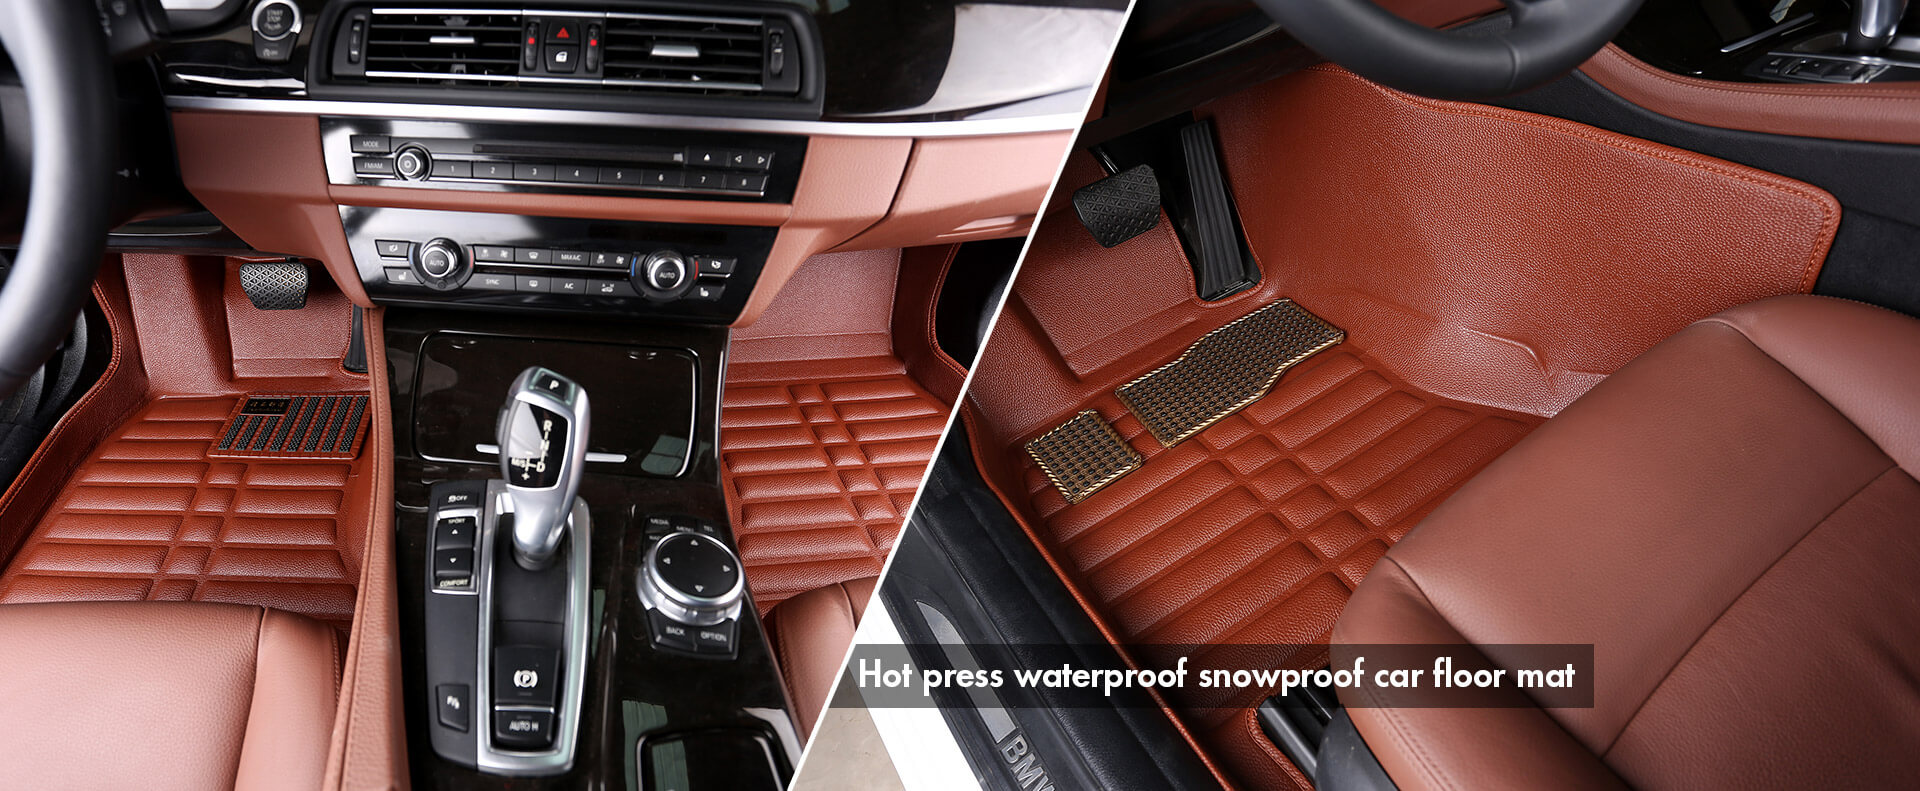 Hot press waterproof snowproof car floor mat